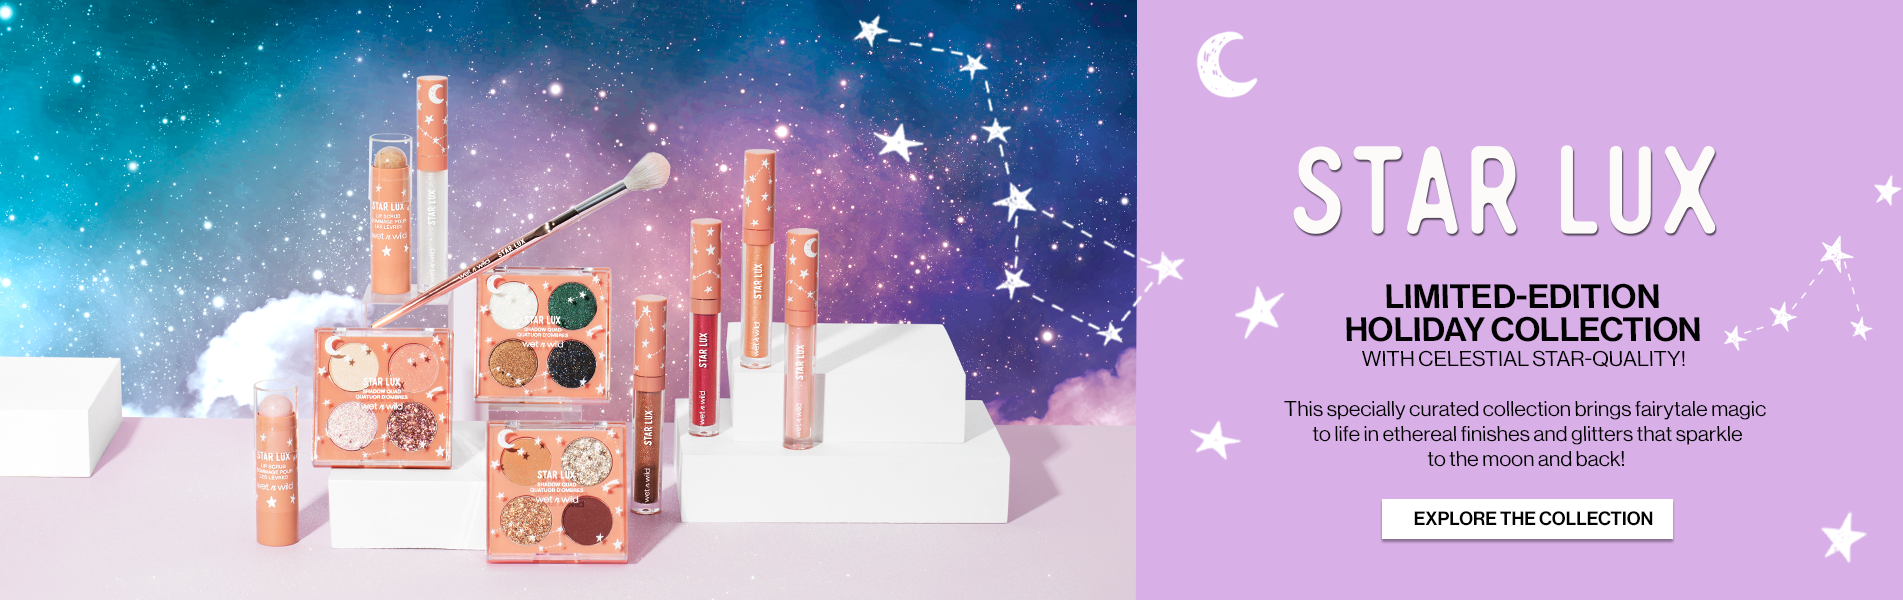 wet n wild | Star Lux Limited-Edition Holiday Collection With Celestial Star-Quality! This specially curated collection brings fairytale magic to life in ethereal finishes and glitters that sparkle to the moon and back! | Entire Collection front facing in